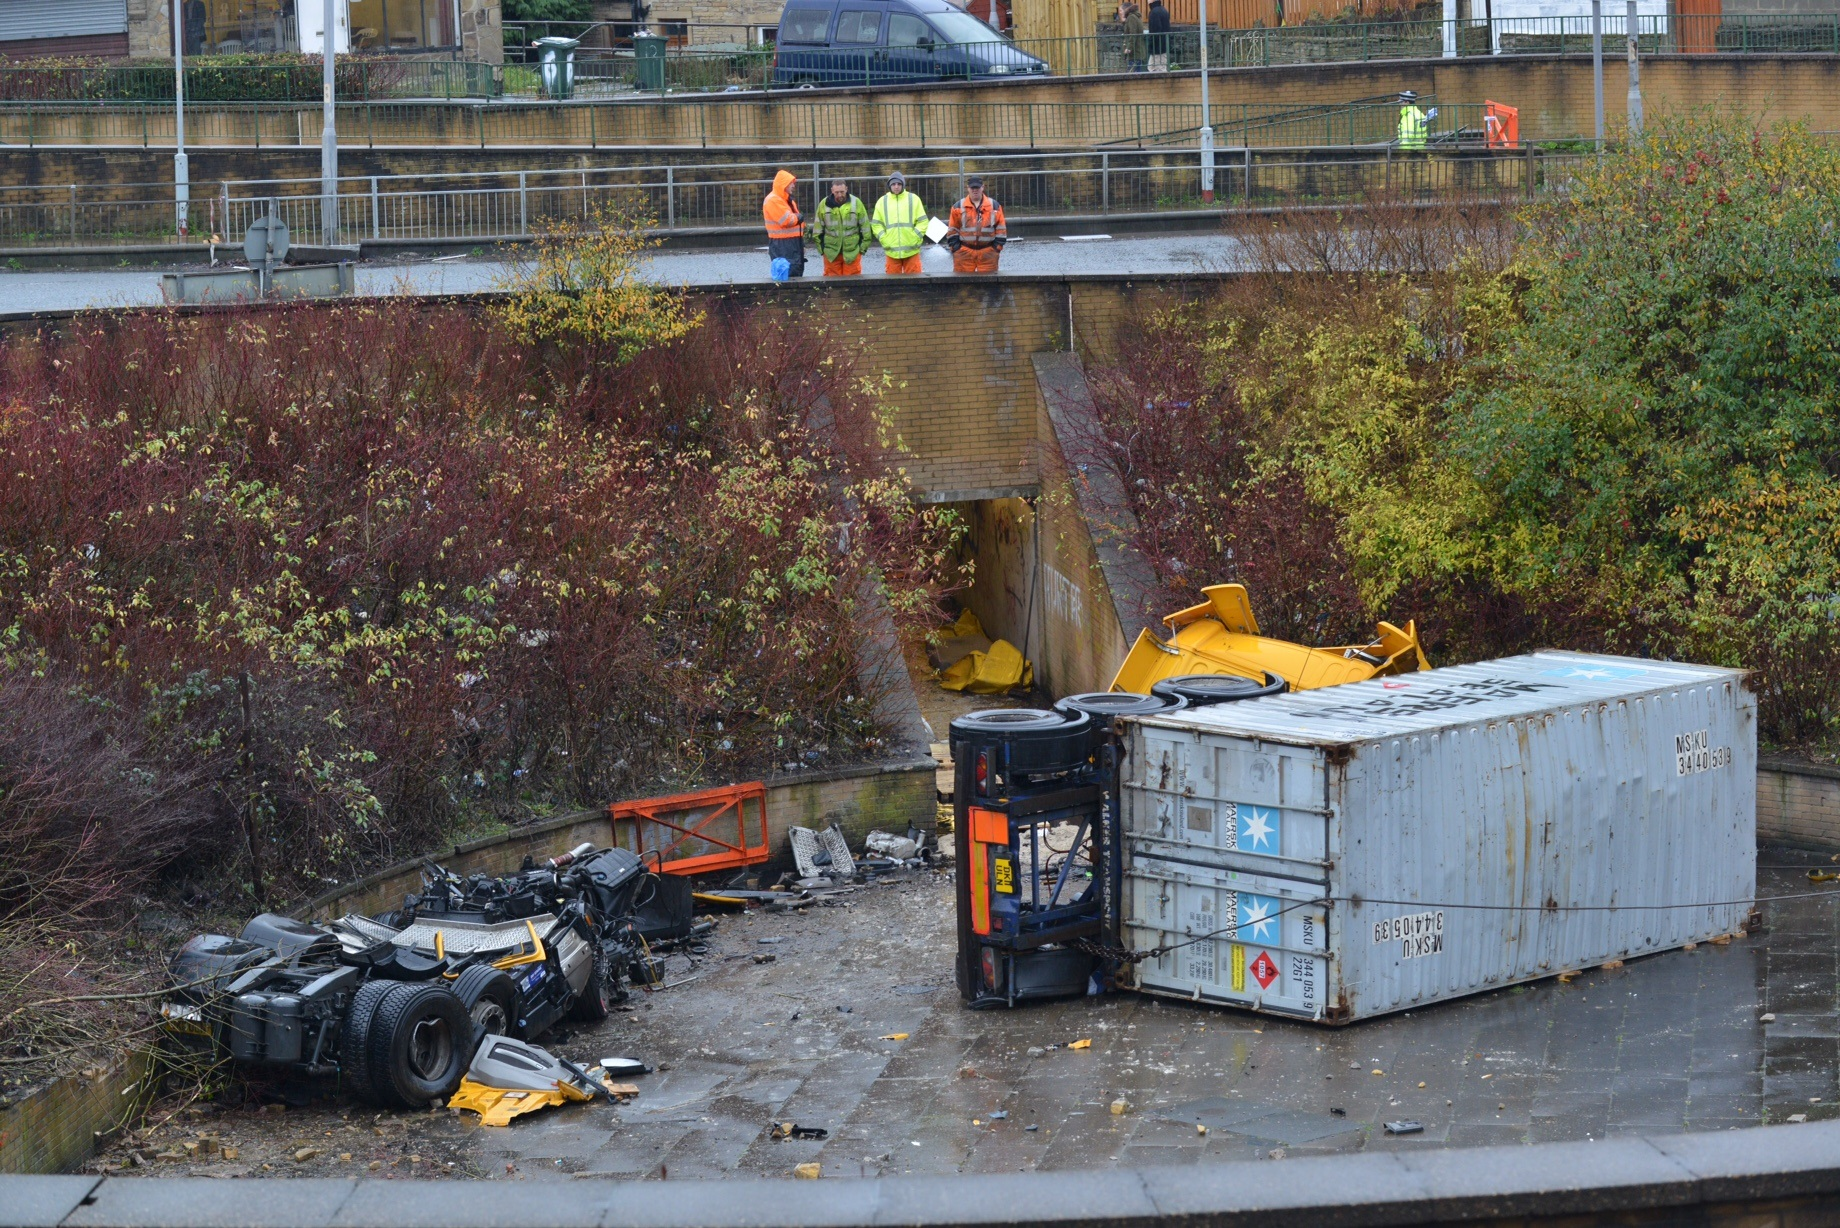 Police name lorry driver in Bradford horror crash, while post mortem